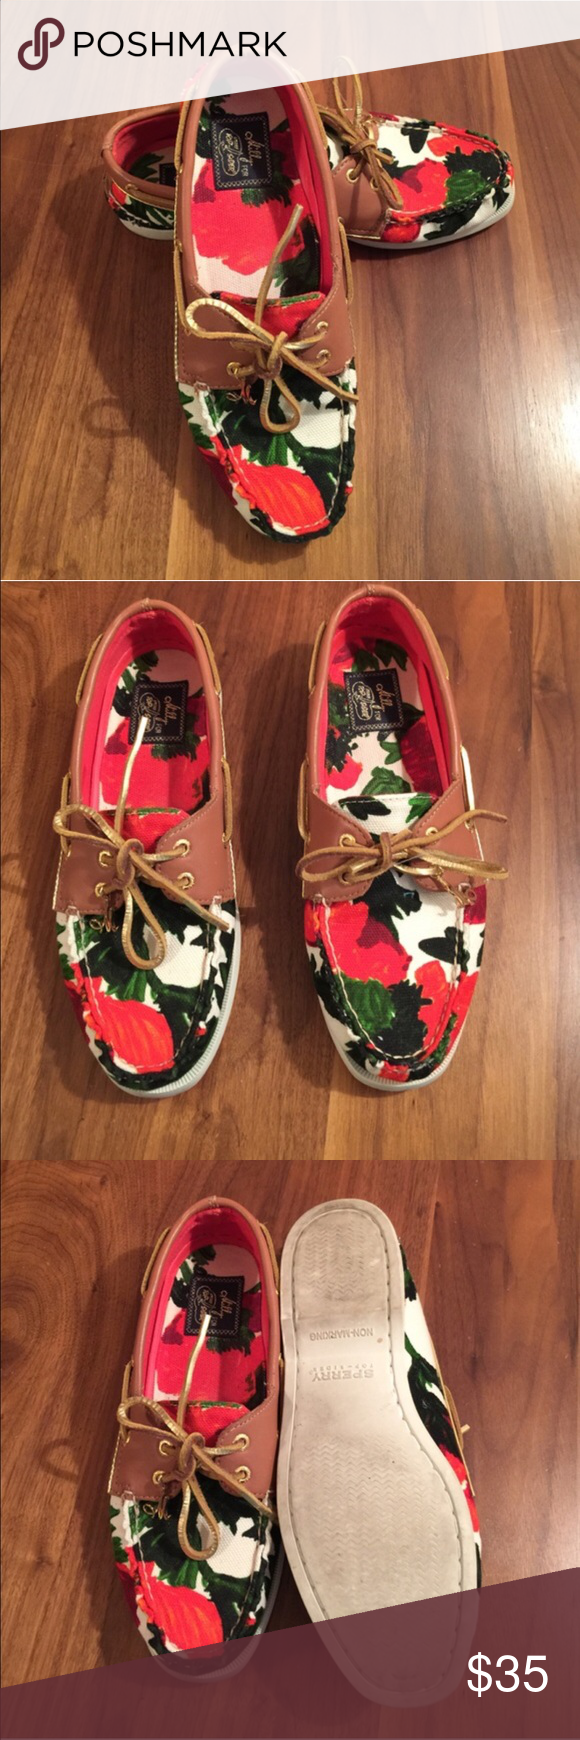 Limited Edition Milly Sperry Top-Siders Preloved floral Sperry Top-Sider! Milly exclusive! Size 8.5! Perfect for the upcoming spring and summer! Sperry Top-Sider Shoes